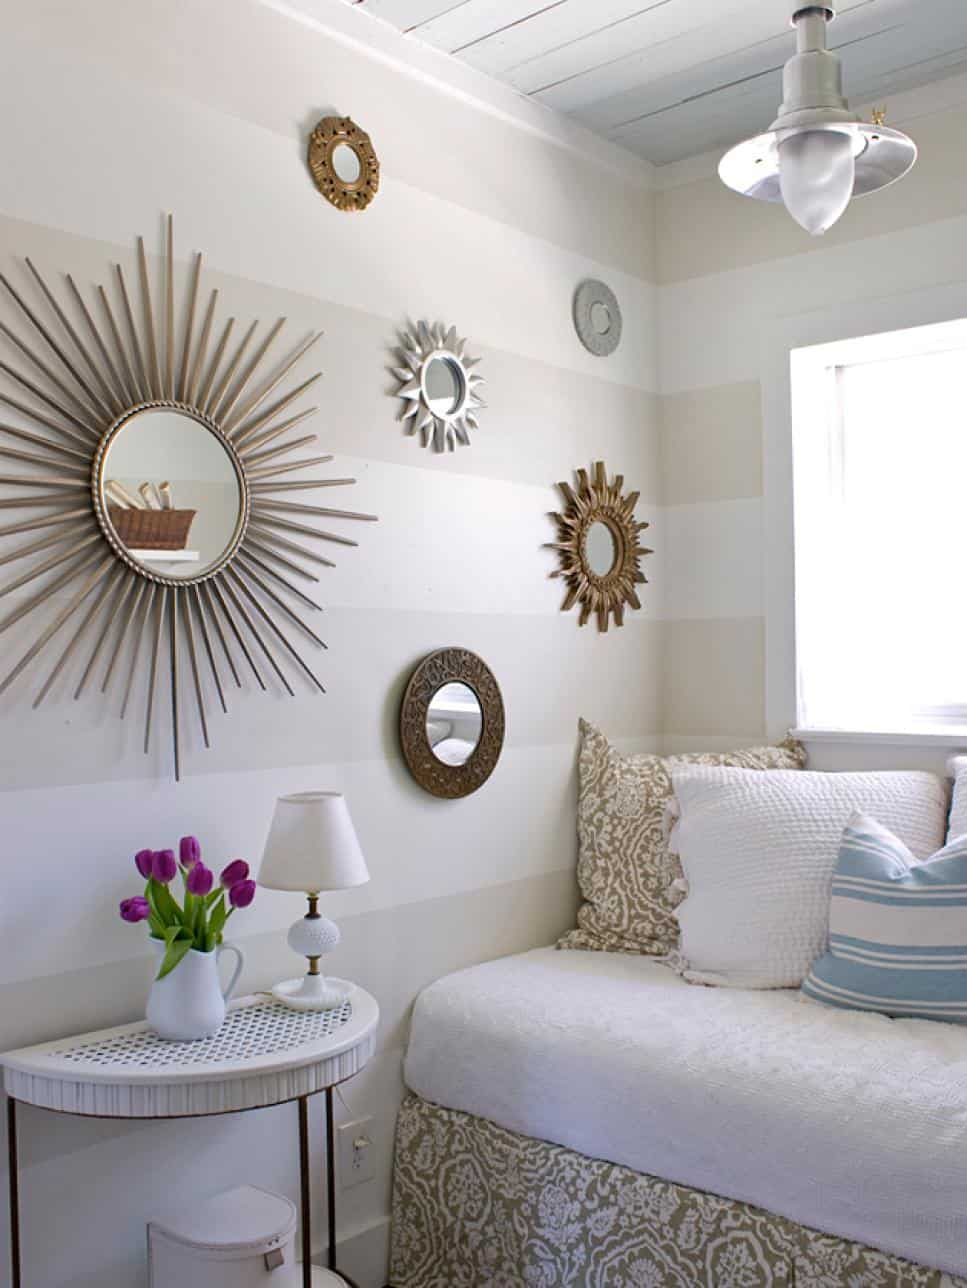 Small Bedroom With Mirrors Decor Idea